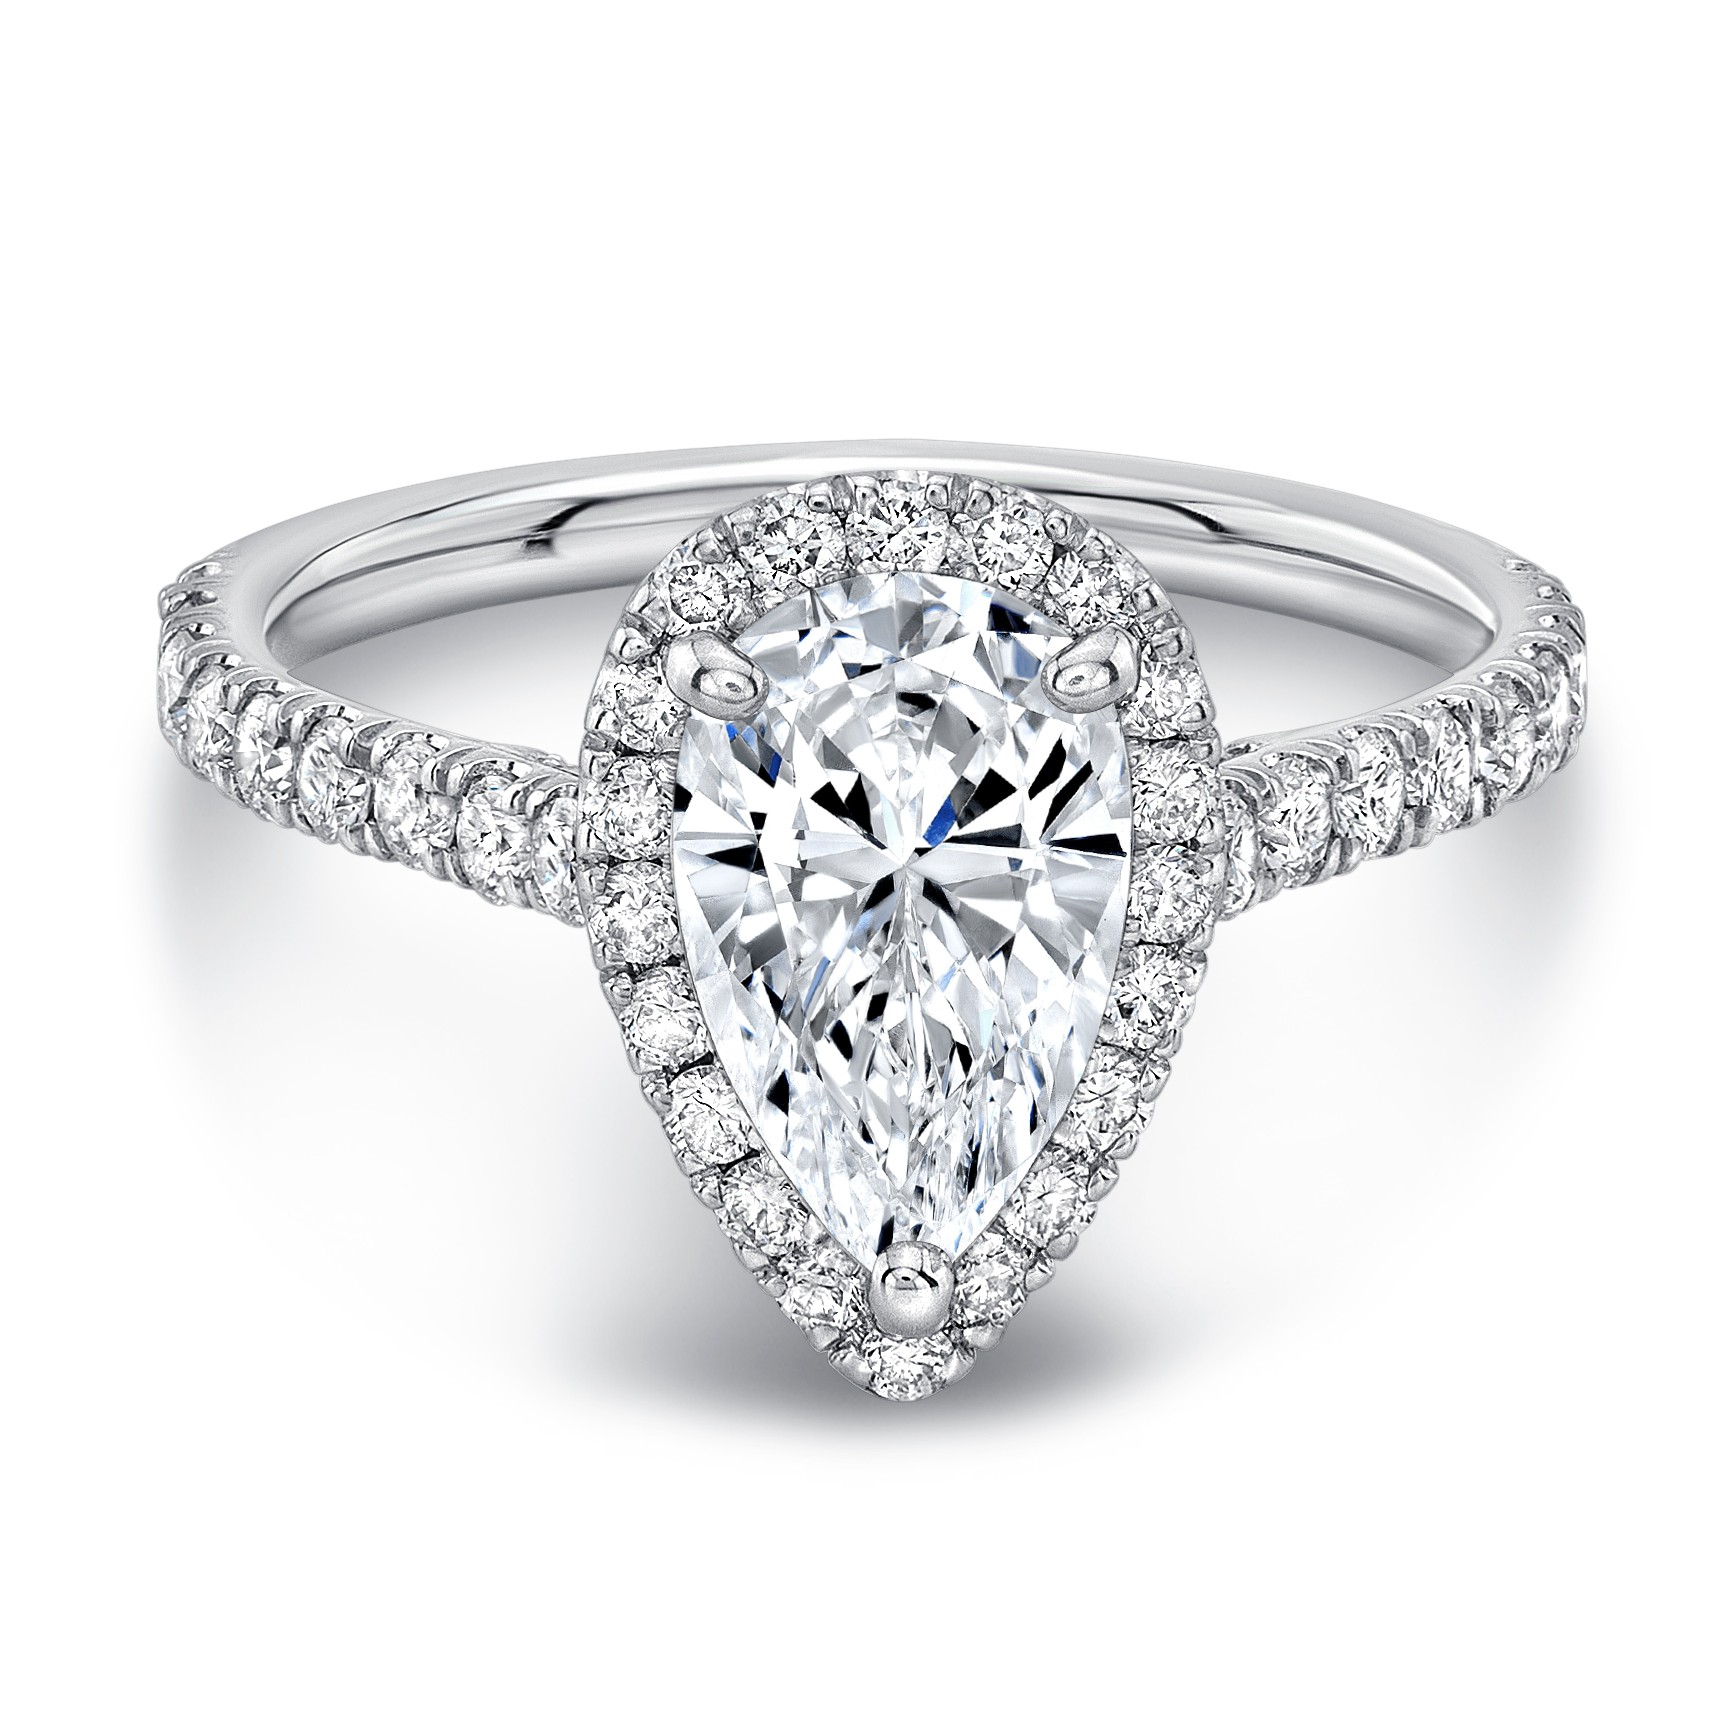 Preset 1 Carat G si2 Pear Shape Halo Diamond Engagement Ring With